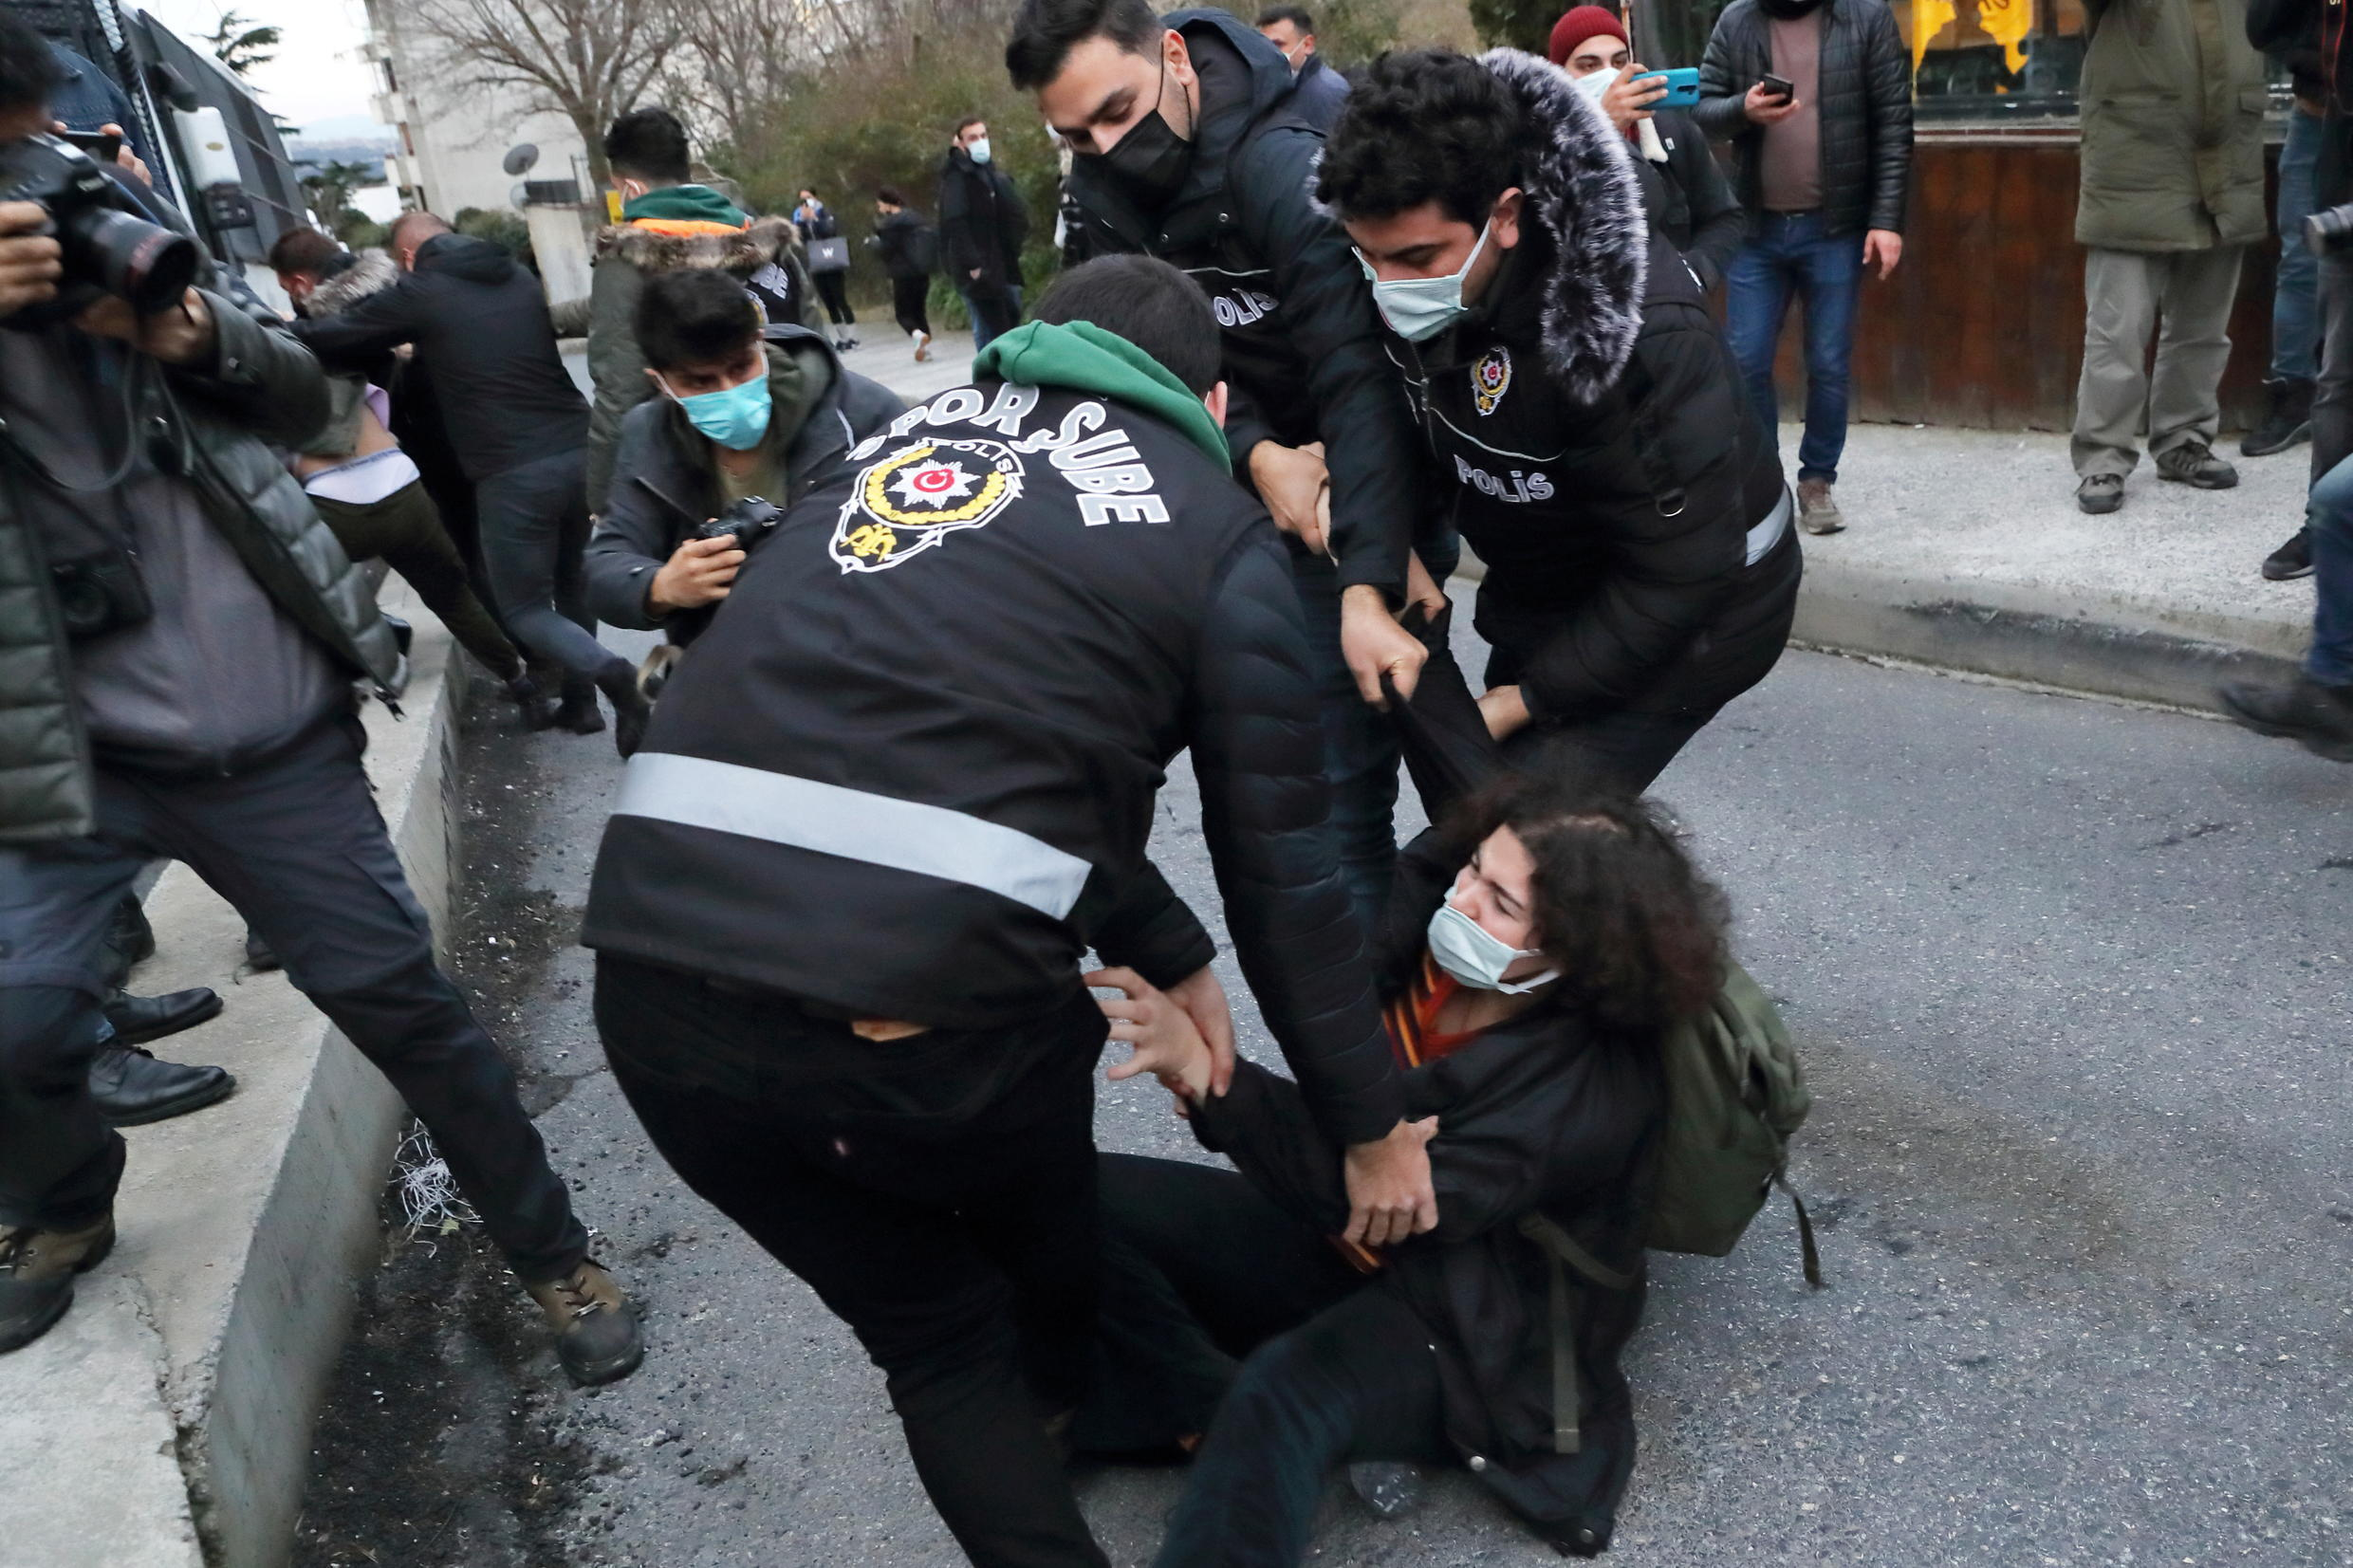 A woman scuffles with police officers as she waits in front of the Bogazici University in solidarity with students inside the campus who are protesting against the new rector and the arrest of two students, in Istanbul, Turkey February 1, 2021.